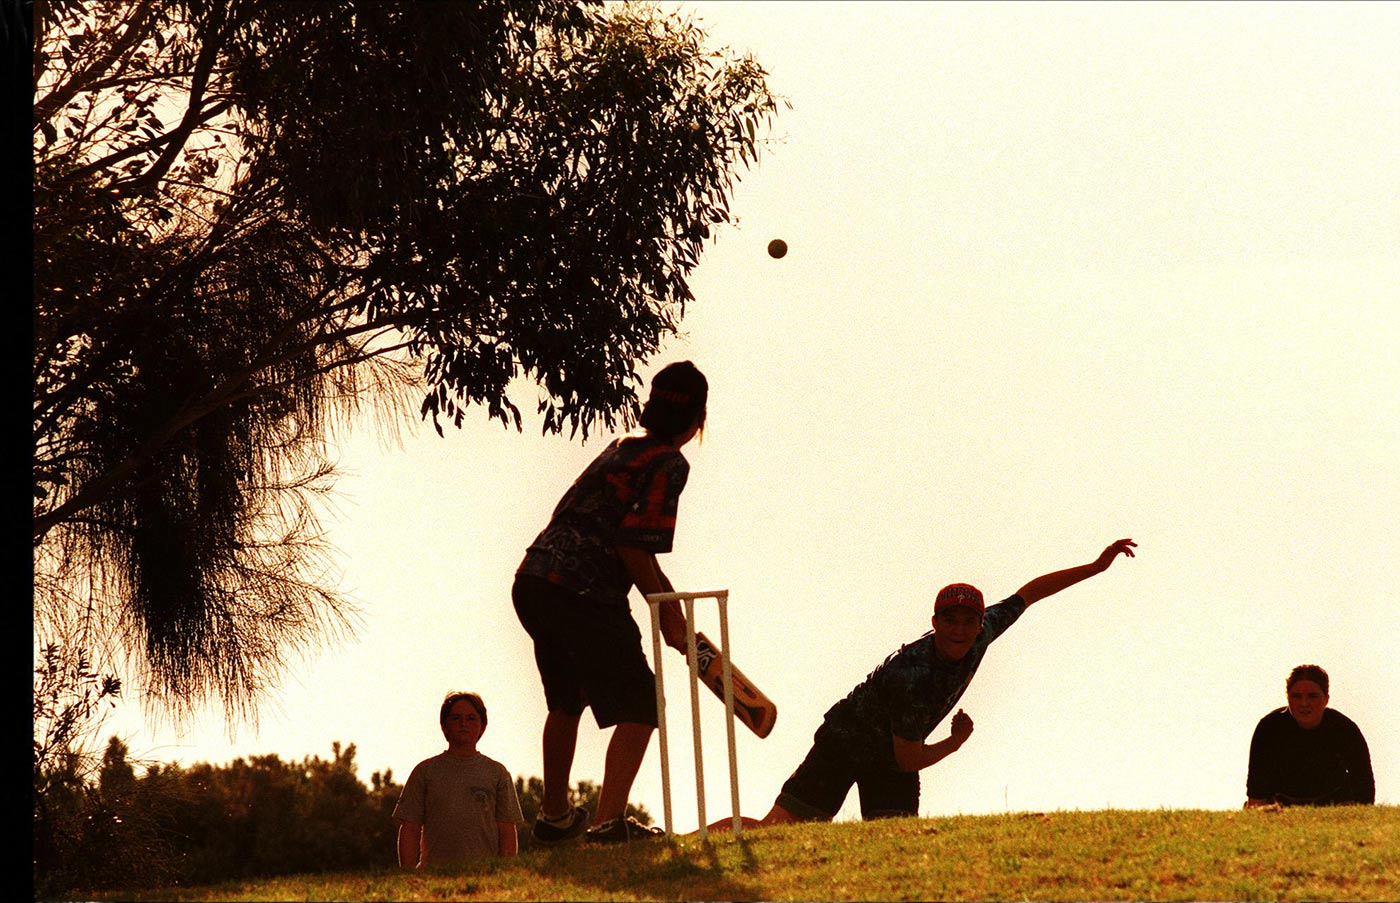 Real cricket heartbreak is best achieved in a backyard setting